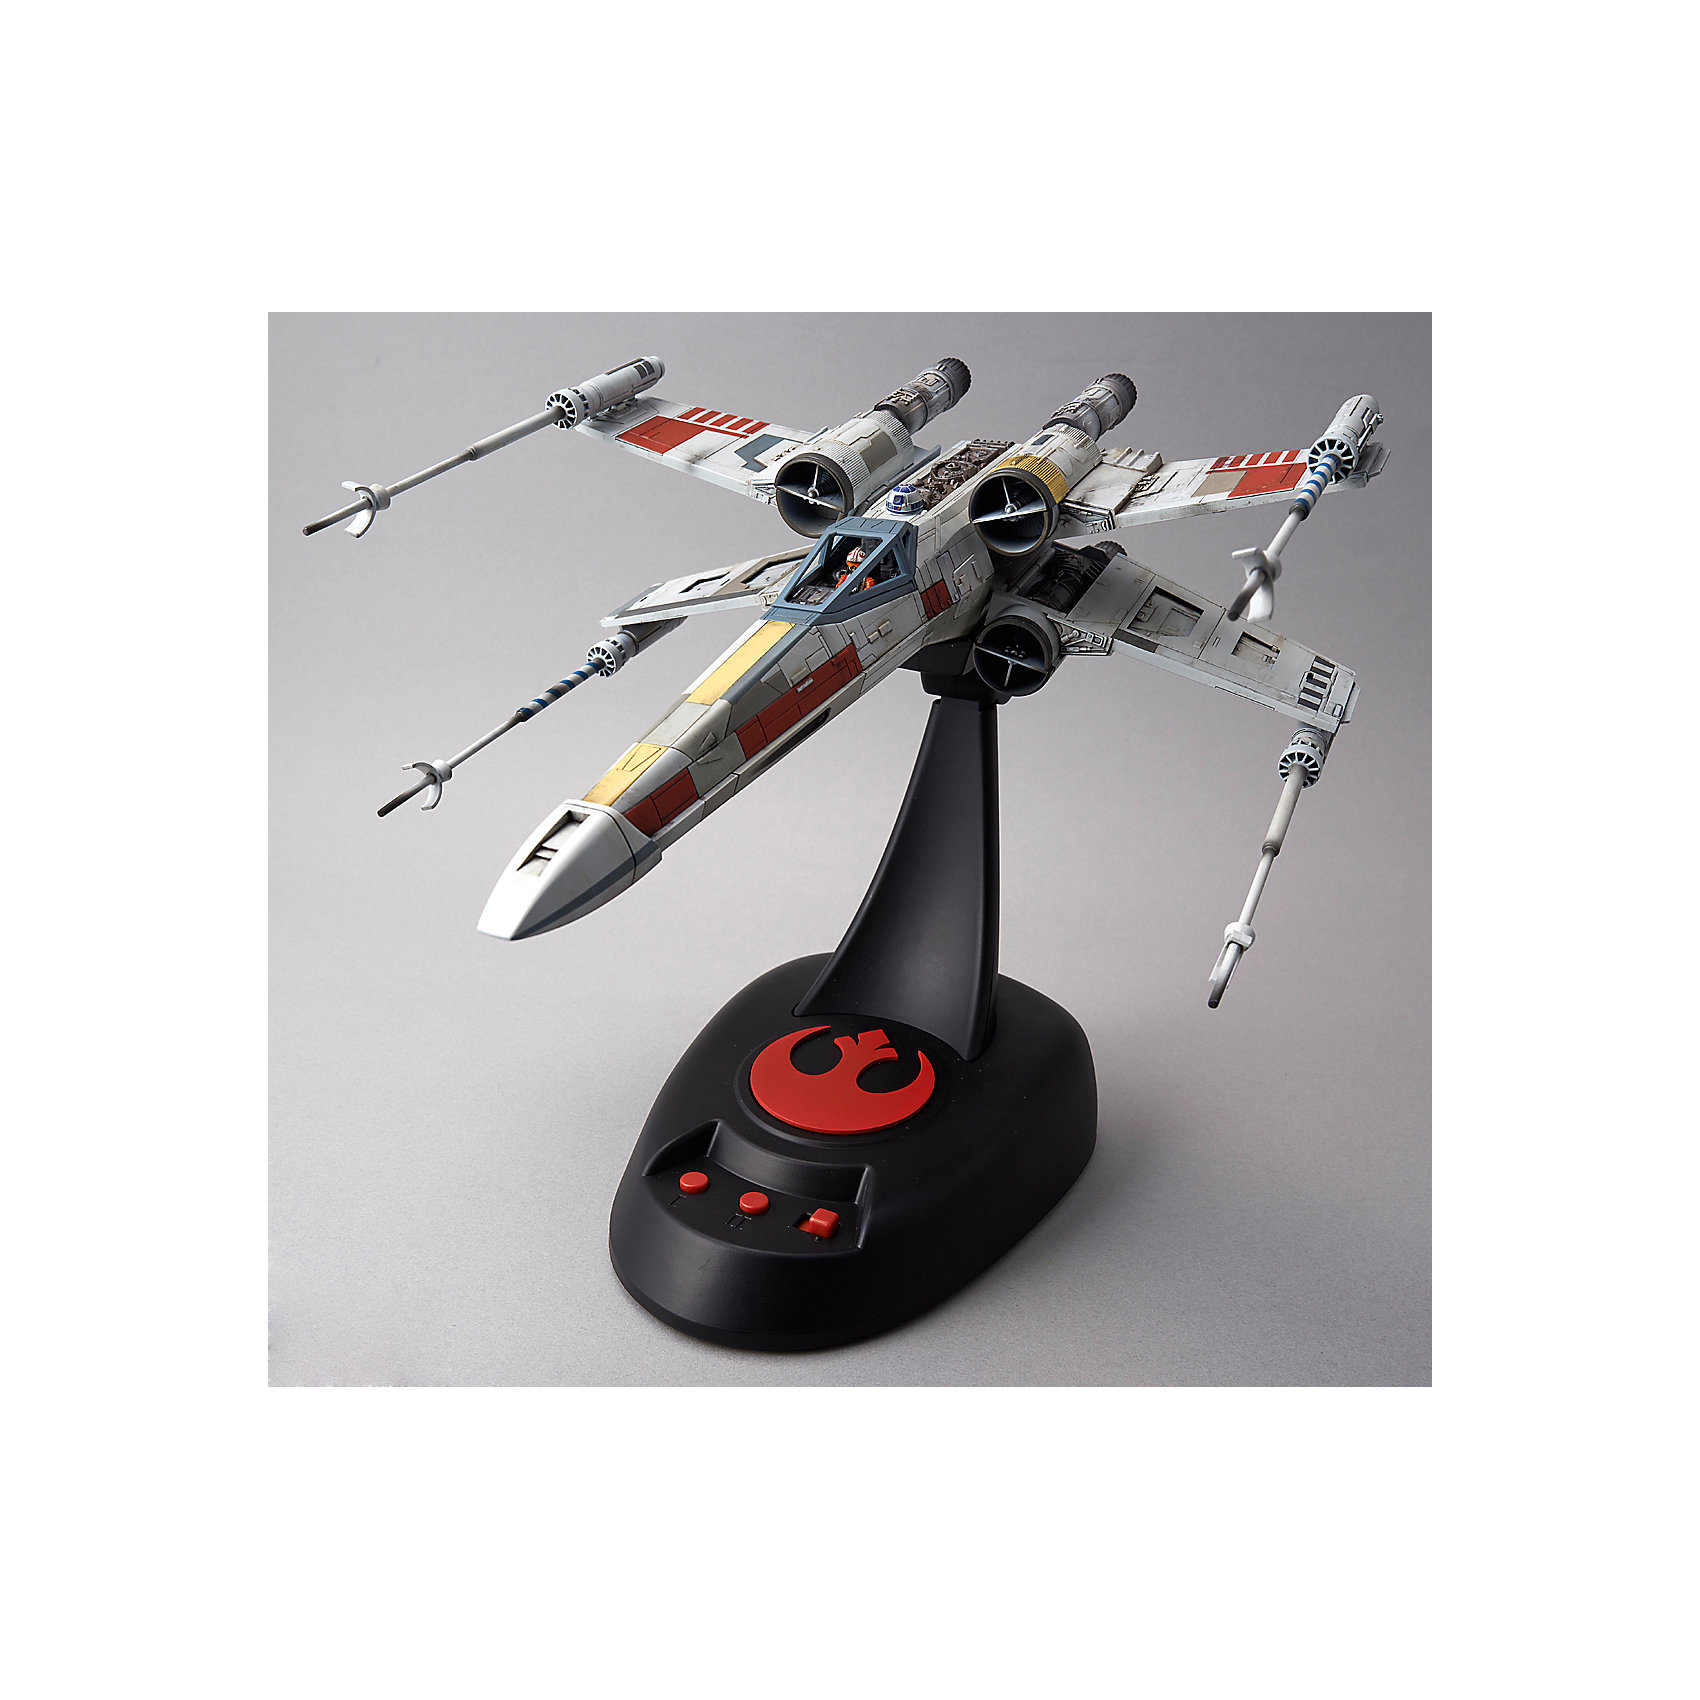 BANDAI Сборная модель Истребитель X-Wing Fighter 1/48, со светом и звуком, Звездные Войны lepin 05040 y wing attack fighter 10134 star series wars model building block brick kits compatible assembling gift toys